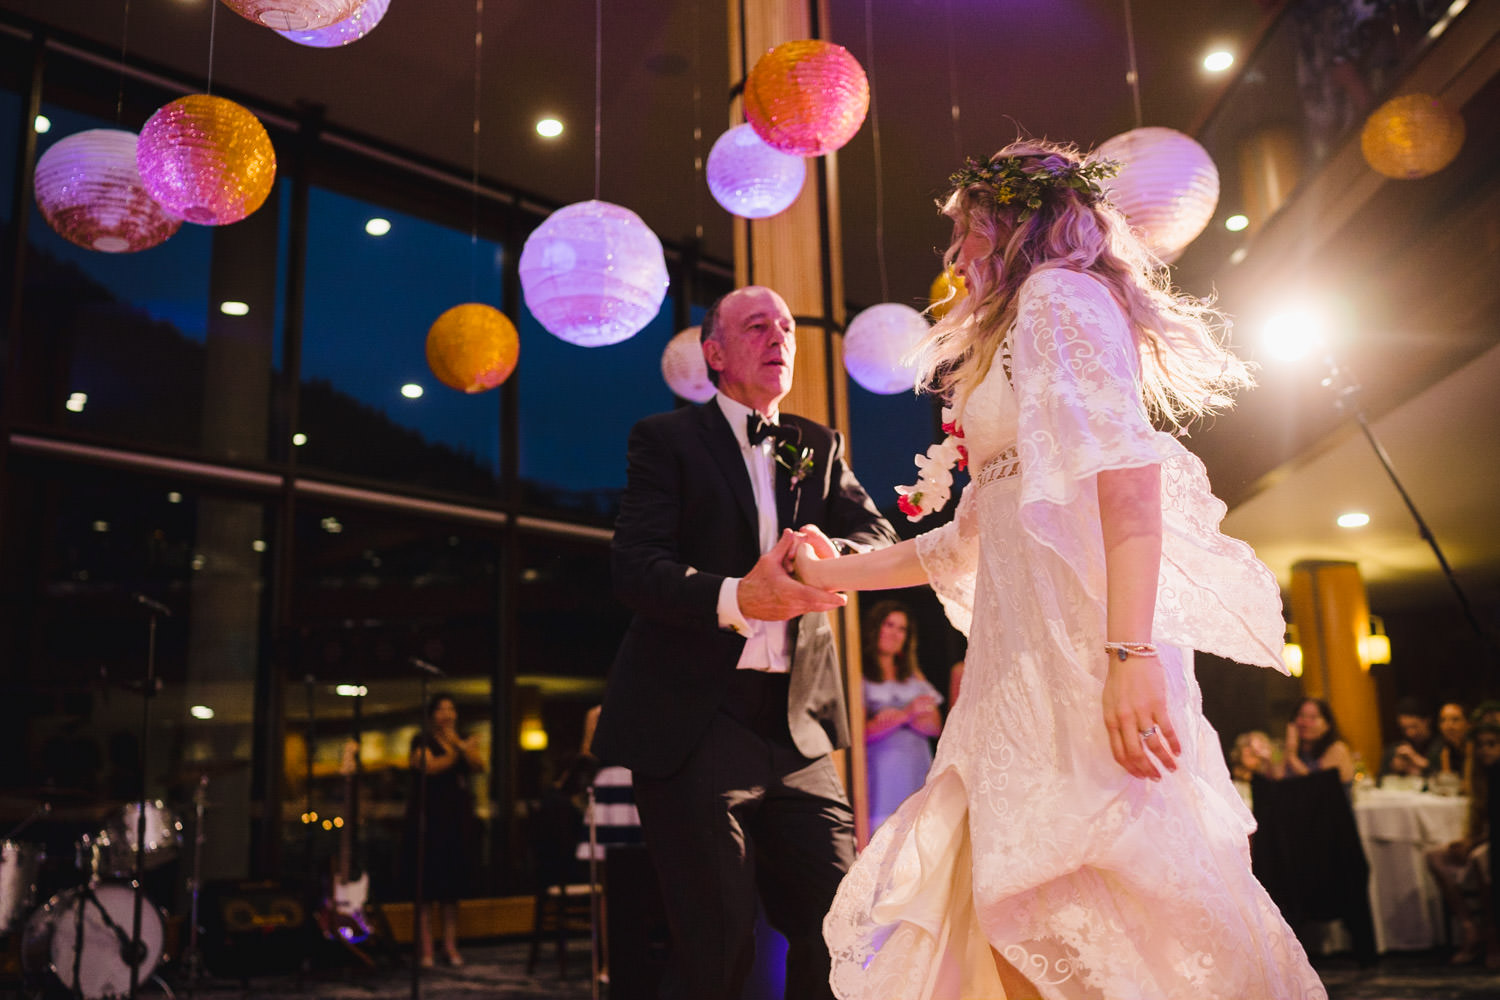 Wedding at Snowbird Cliff Lodge dancing under colorful paper lanterns photo